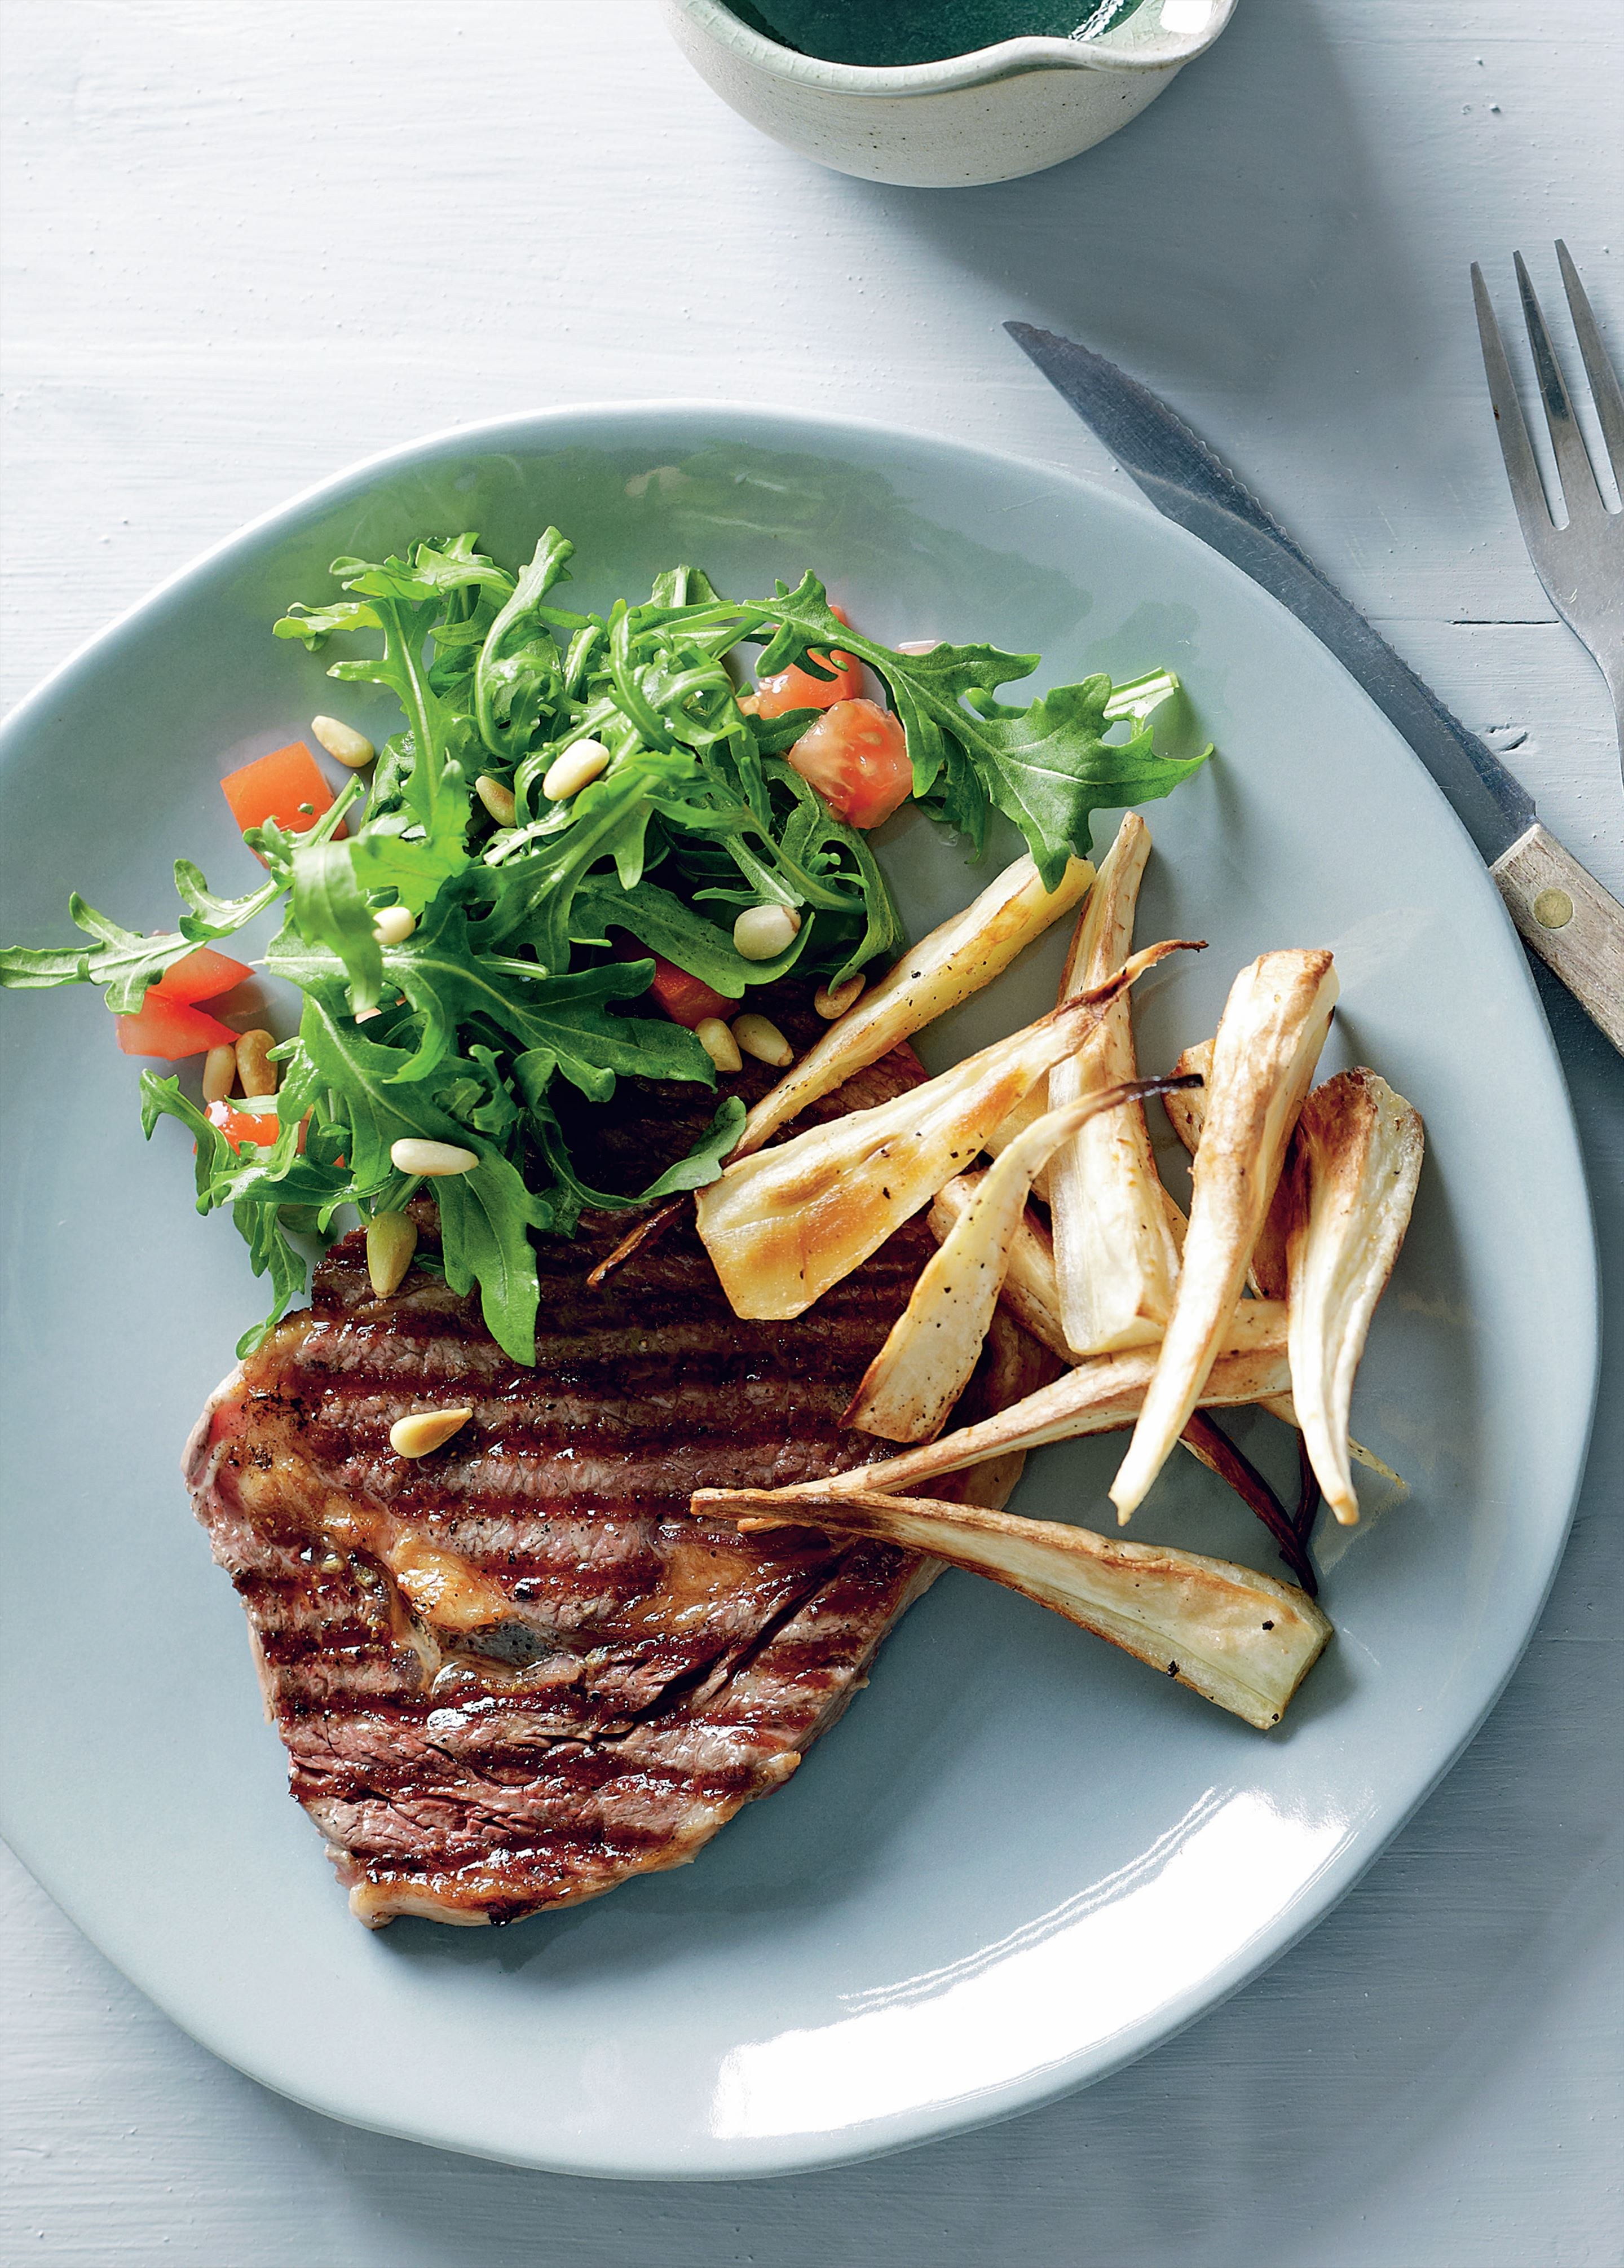 Minute steak with lemon rocket salad